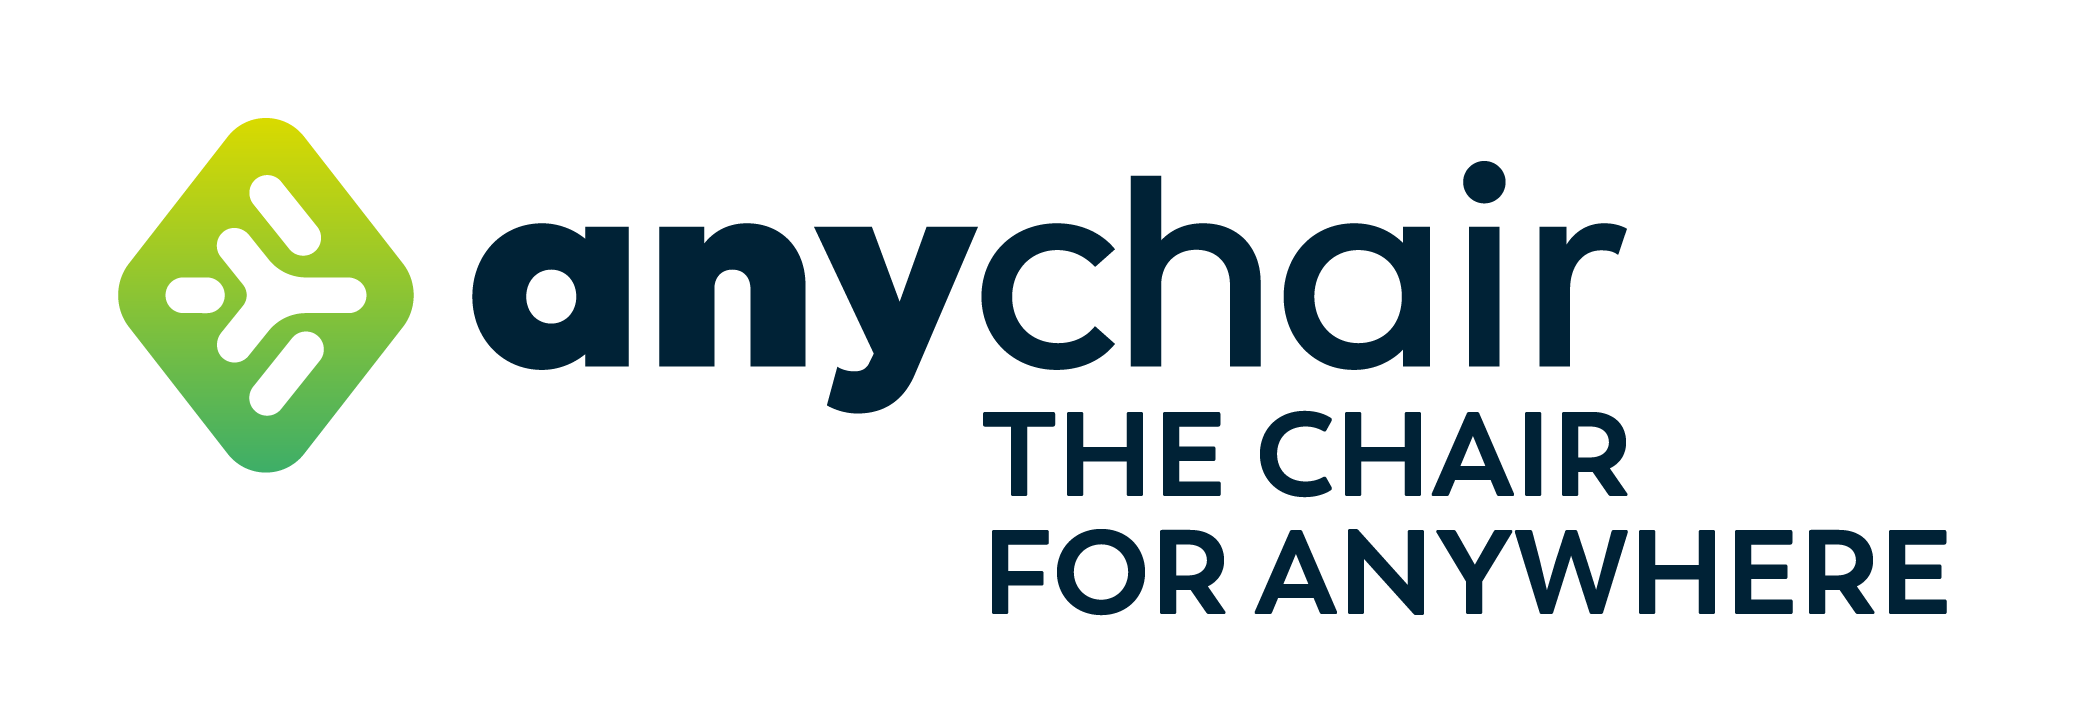 anychair – the chair for anywhere